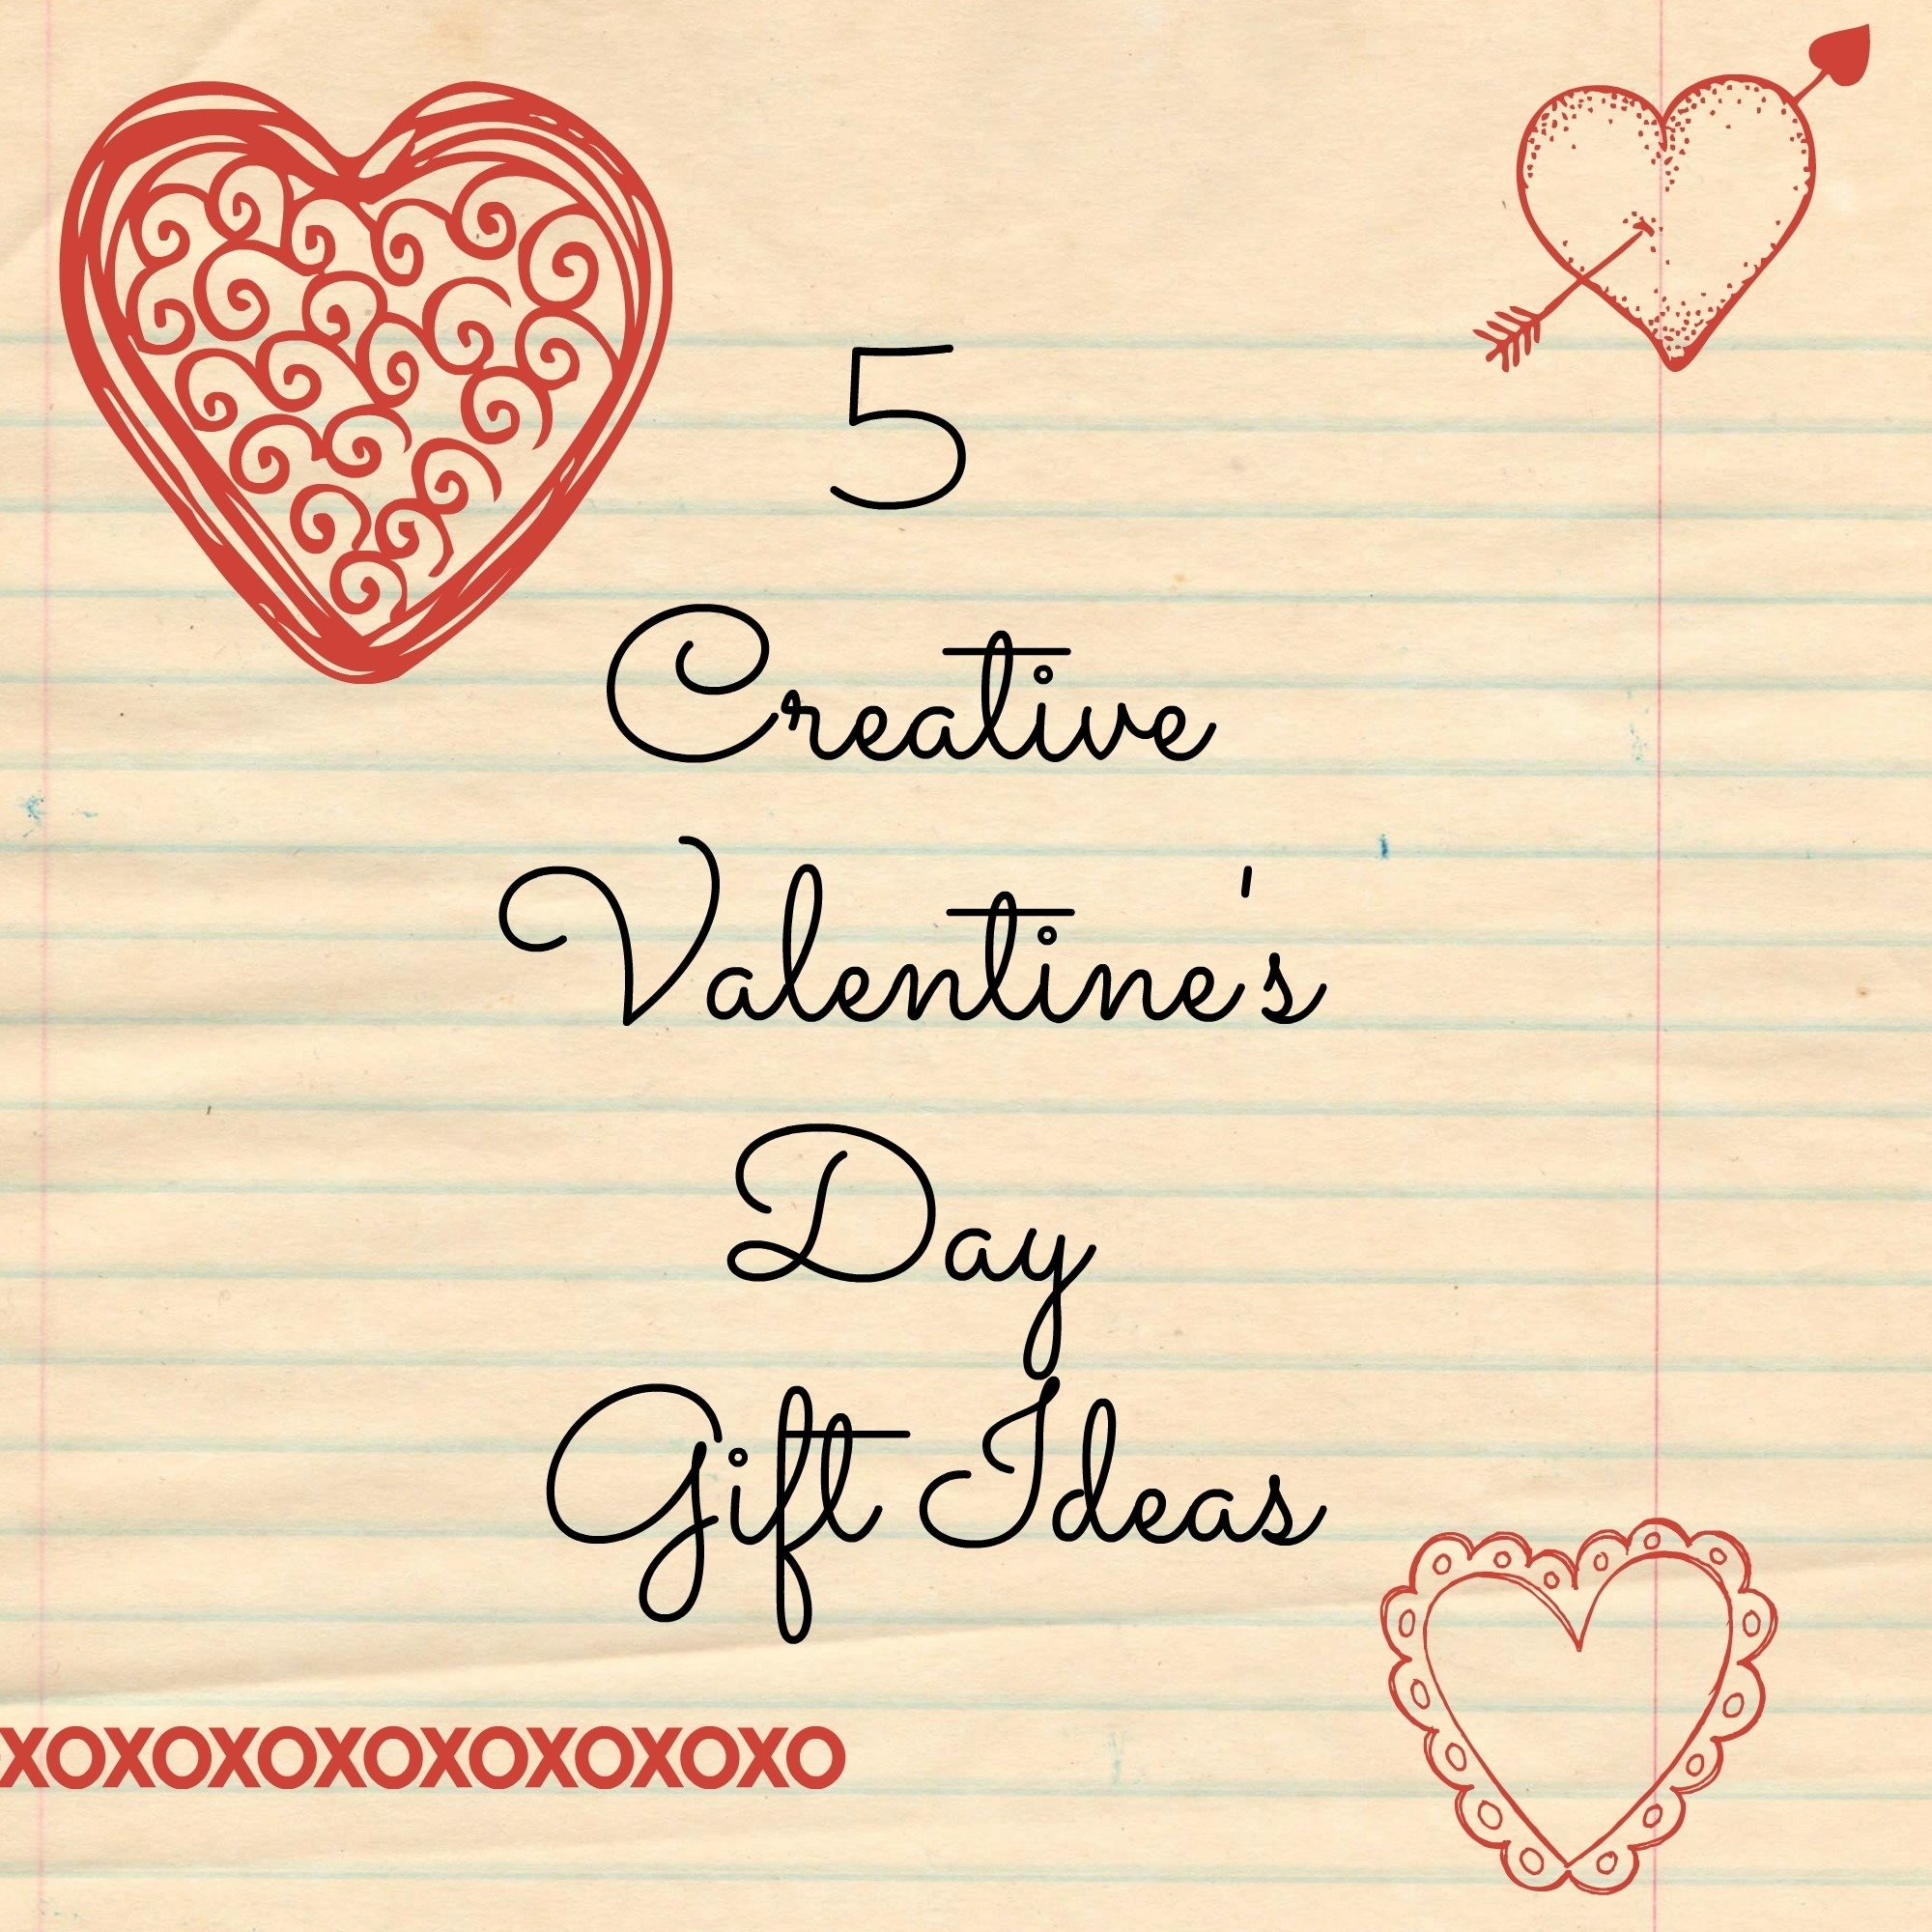 10 Stylish Creative Valentines Day Gift Ideas 5 creative valentines day gift ideas thrill of the chases 3 2020